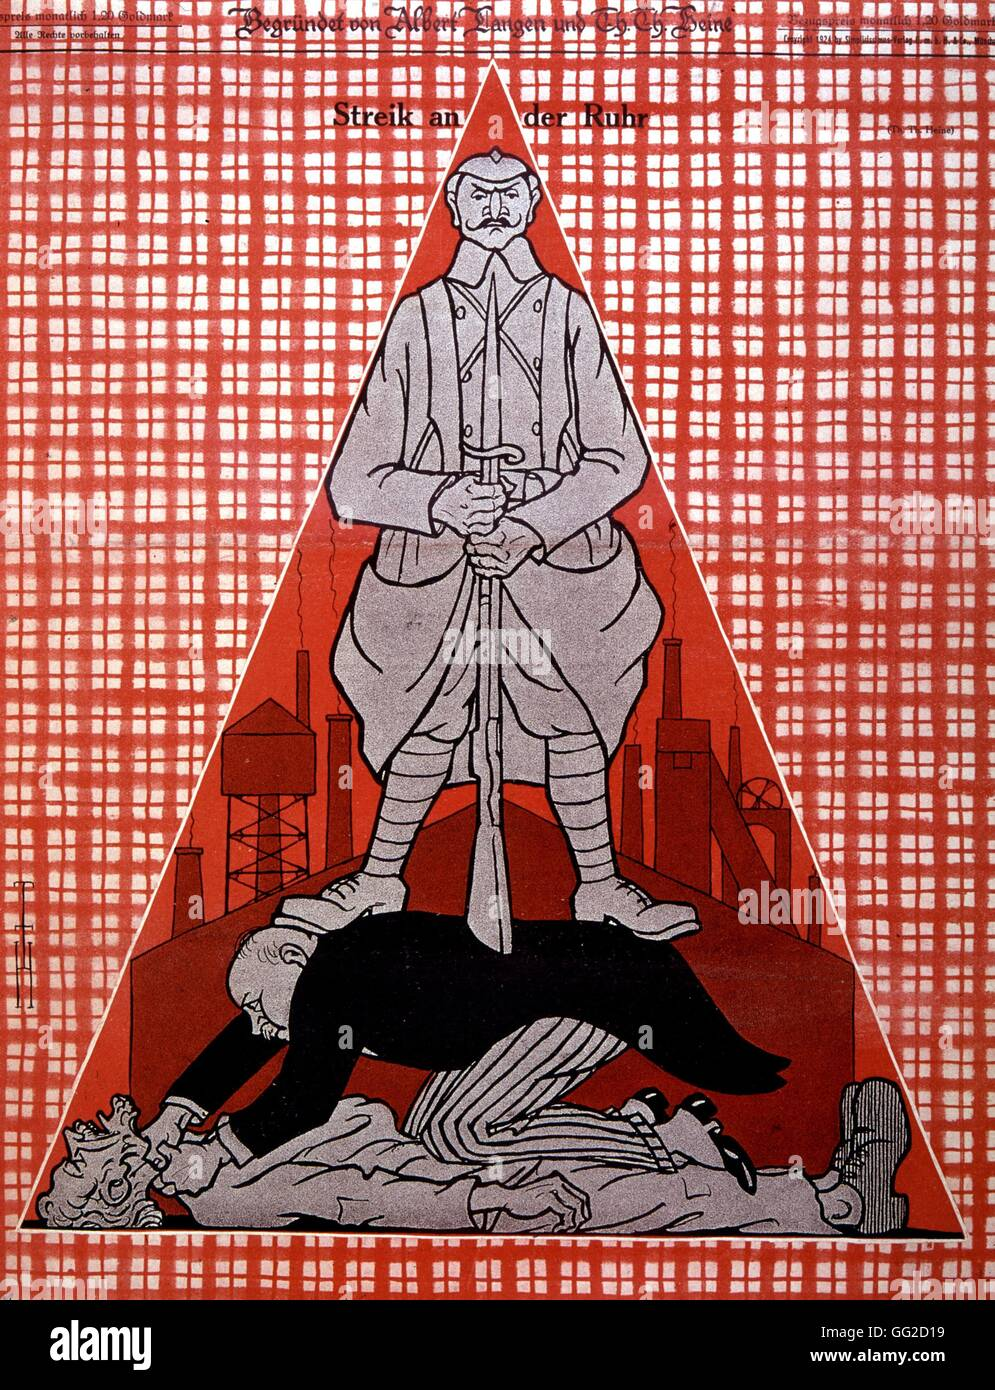 Caricature by Heinrich Heine Strike in the Ruhr region, Germany 1924 Germany - Stock Image